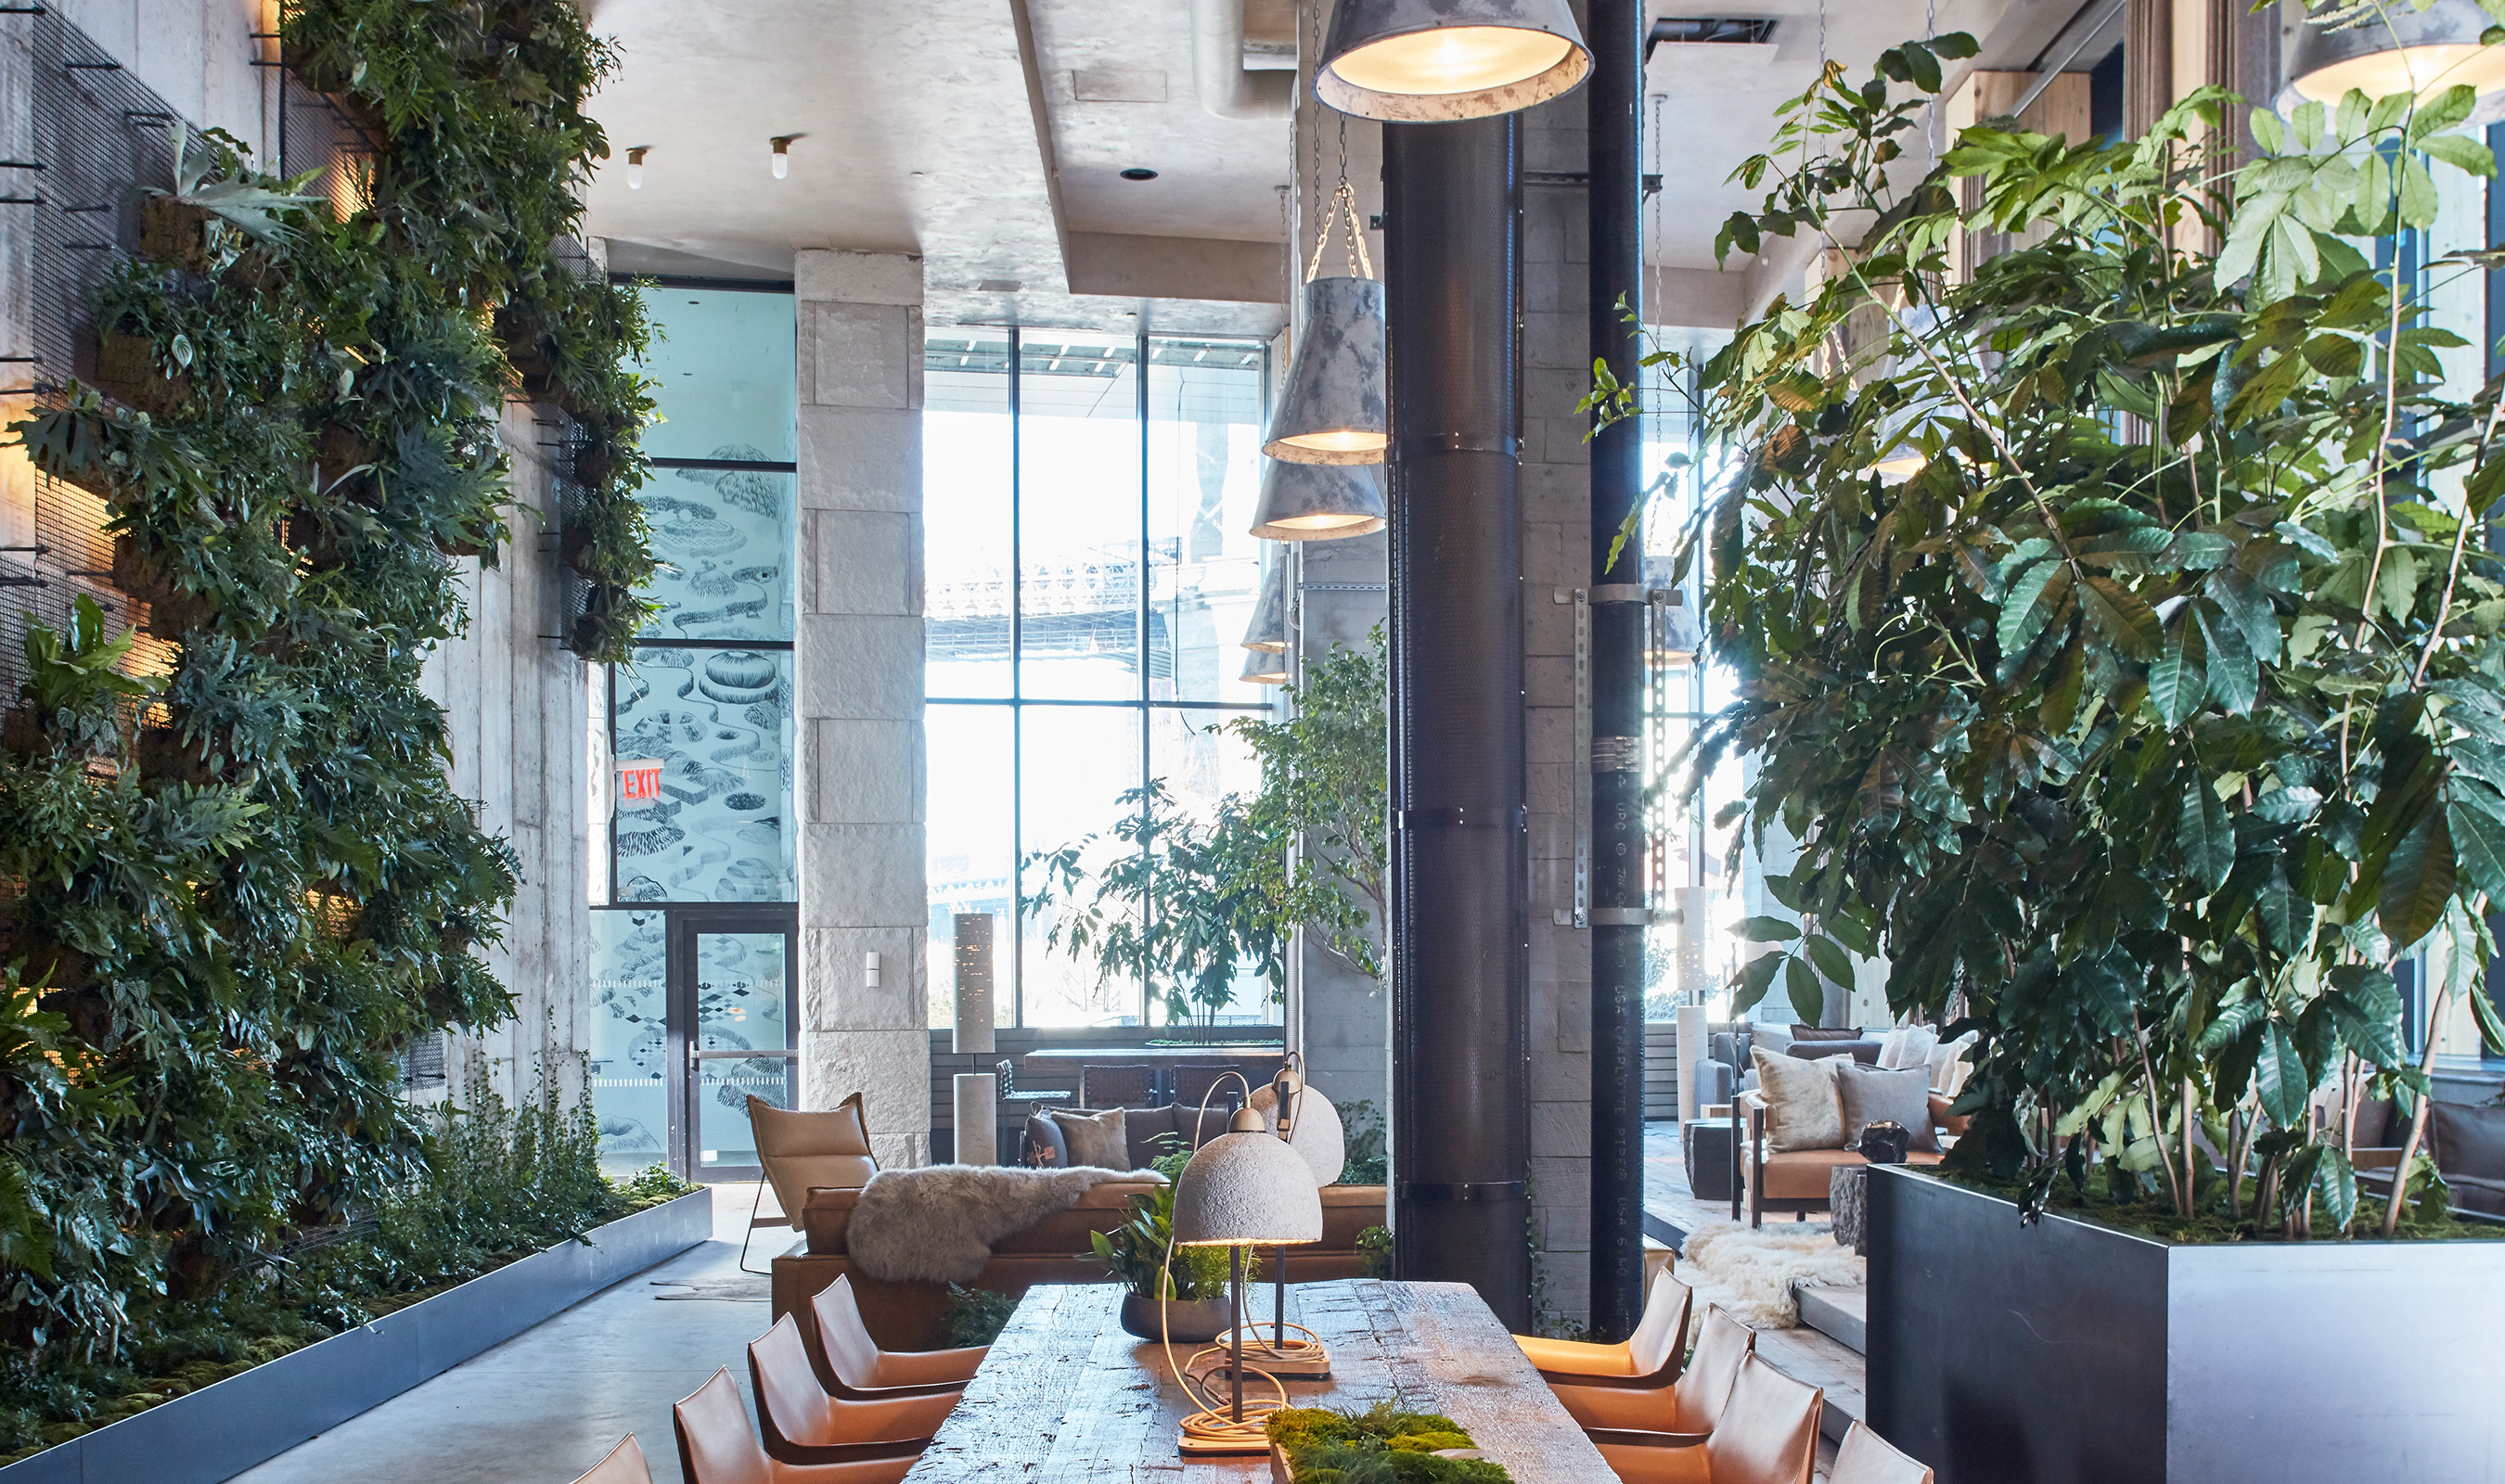 The newly opened 1 Hotel Brooklyn Bridge in Brooklyn's iconic Dumbo neighborhood features a touch of greenery in the guest rooms and public spaces, bringing the outdoors inside.